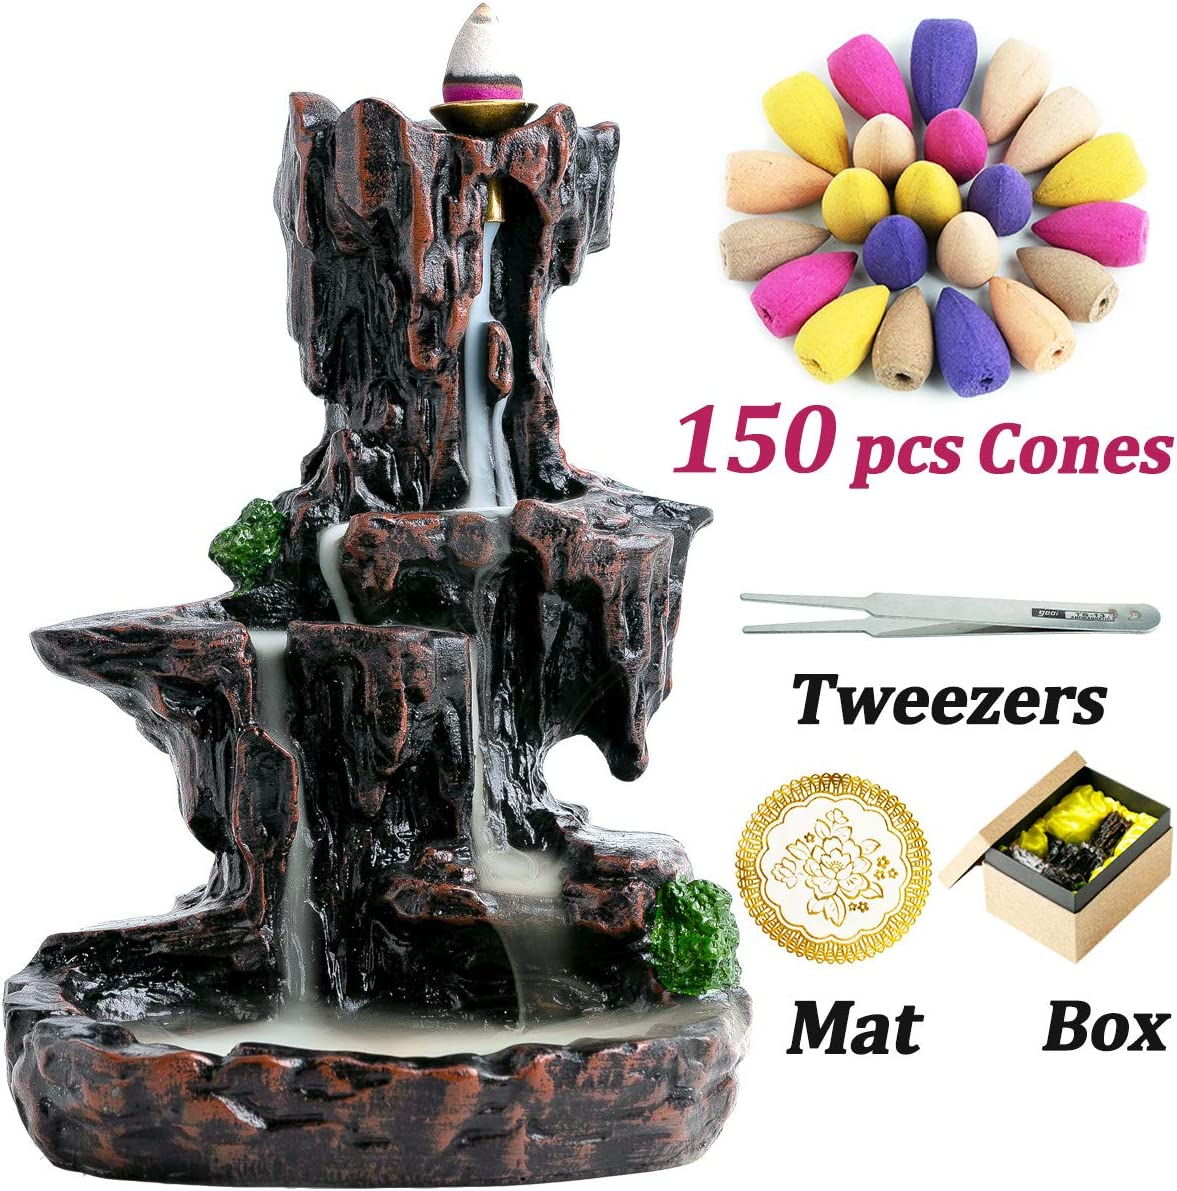 AIRUI Backflow Waterfall Incense Holder,Mountain Tower Incense Burner,Aromatherapy Ornament Home Decor with 150 Backflow Incense Cones